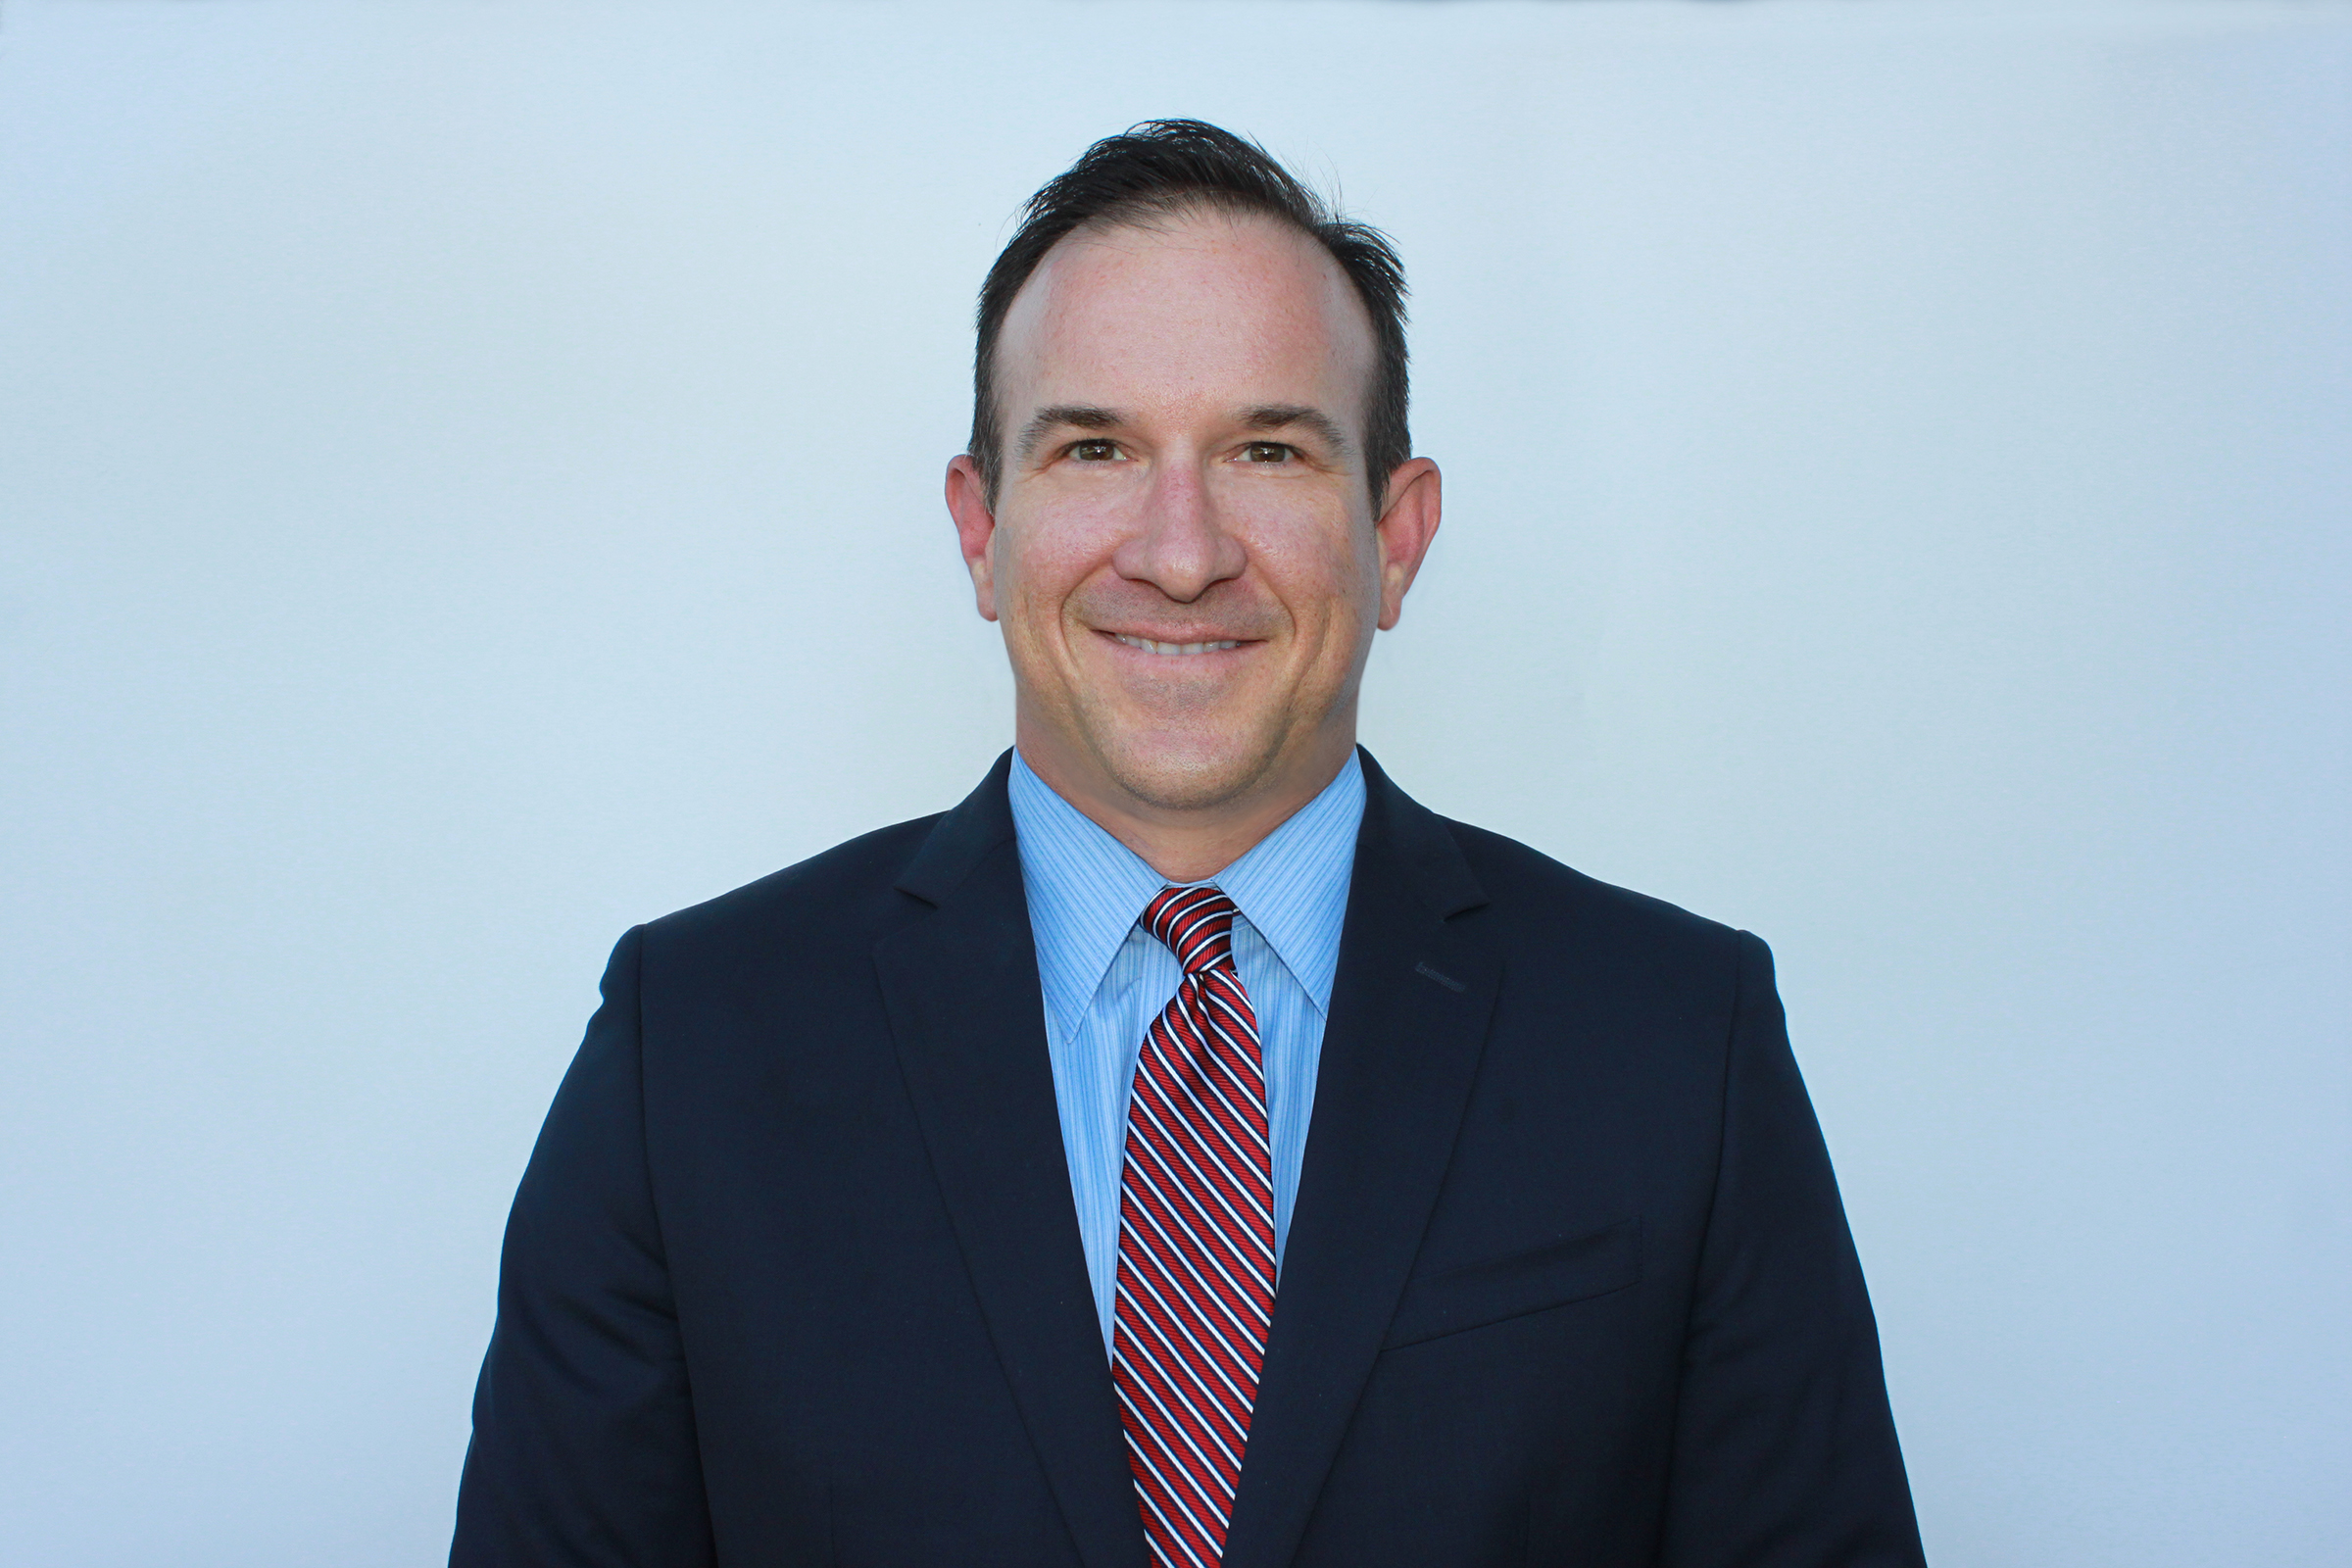 Matthew D. Taggart, Vice President and General Counsel